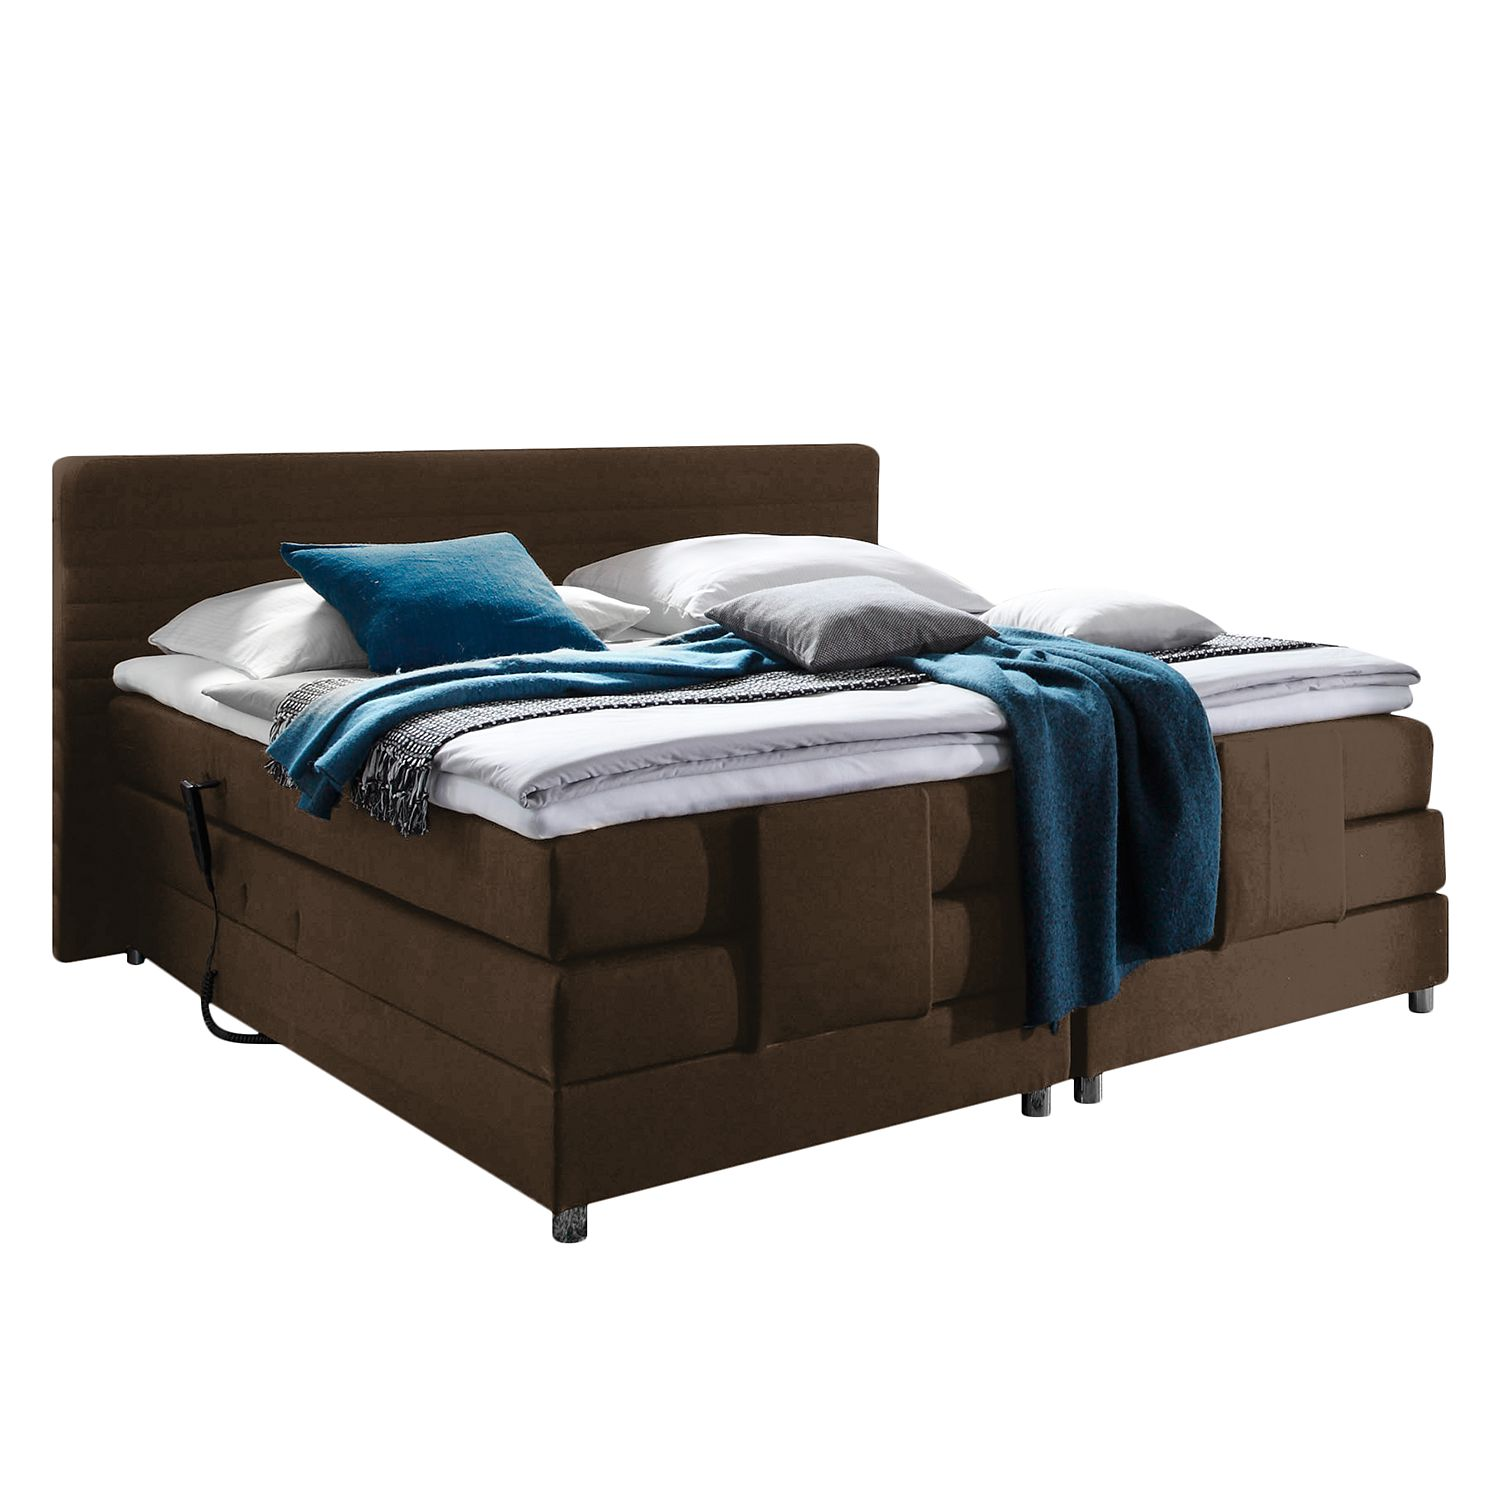 13 sparen boxspringbett belaja mit elektromotor ab 999 99 cherry m bel home24. Black Bedroom Furniture Sets. Home Design Ideas